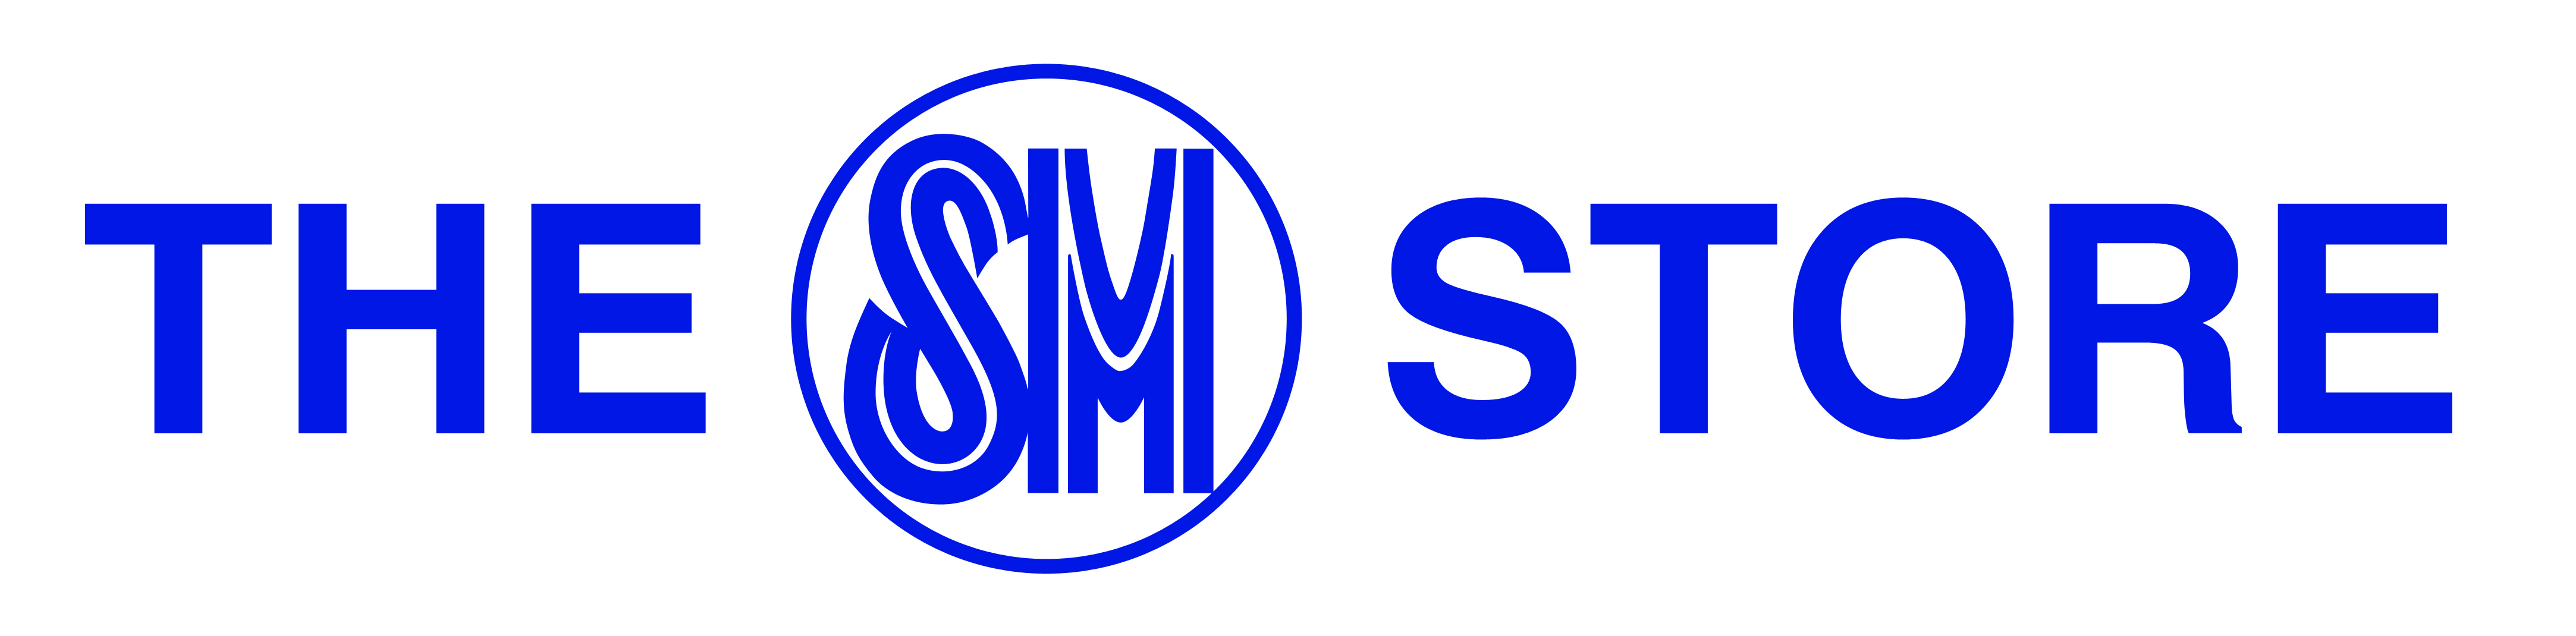 SM Department Store Logo